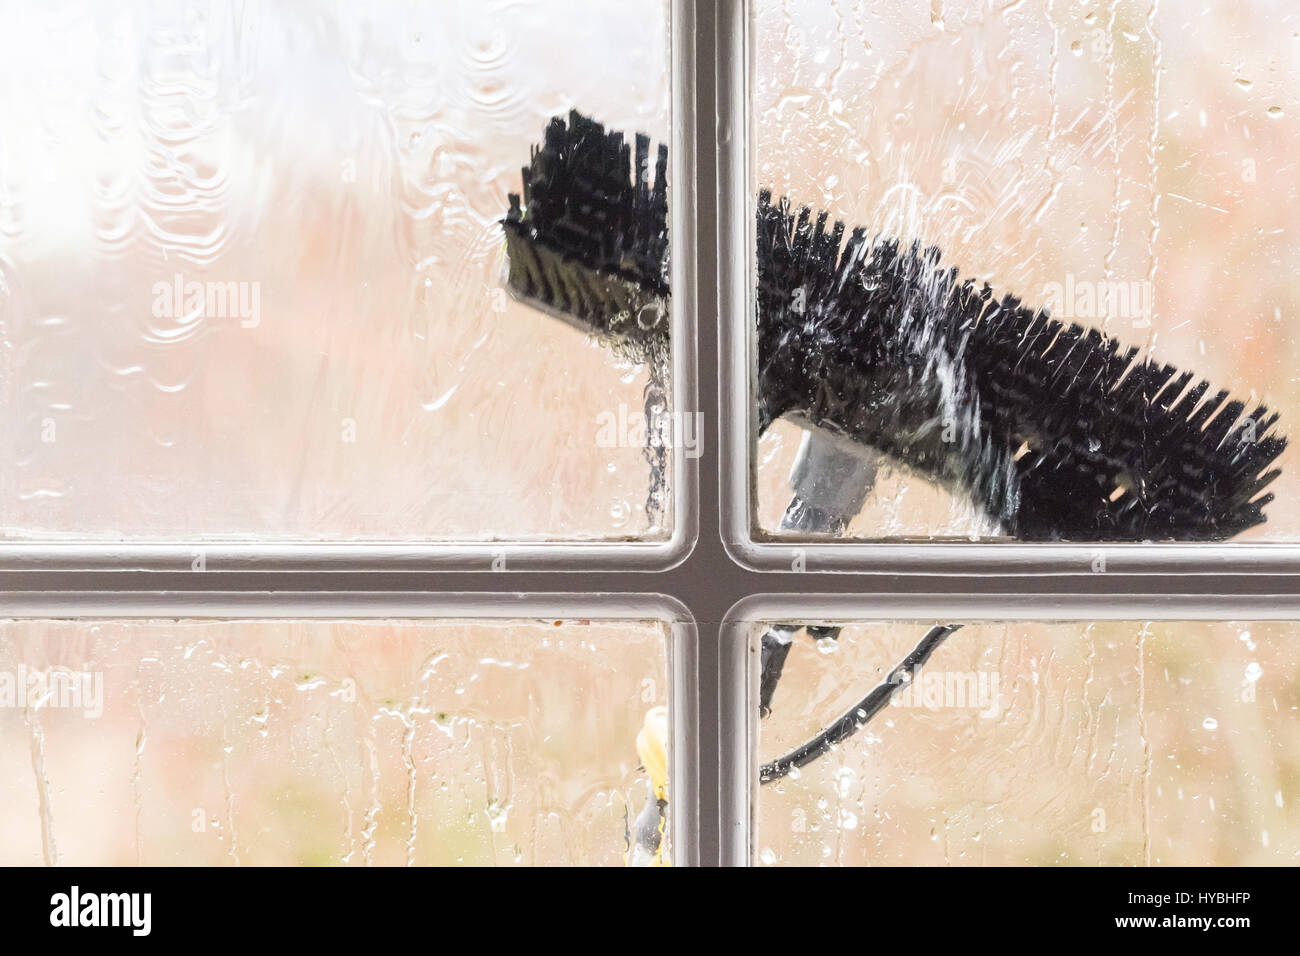 Window cleaning cleaners brush cleaning window seen from inside - Stock Image